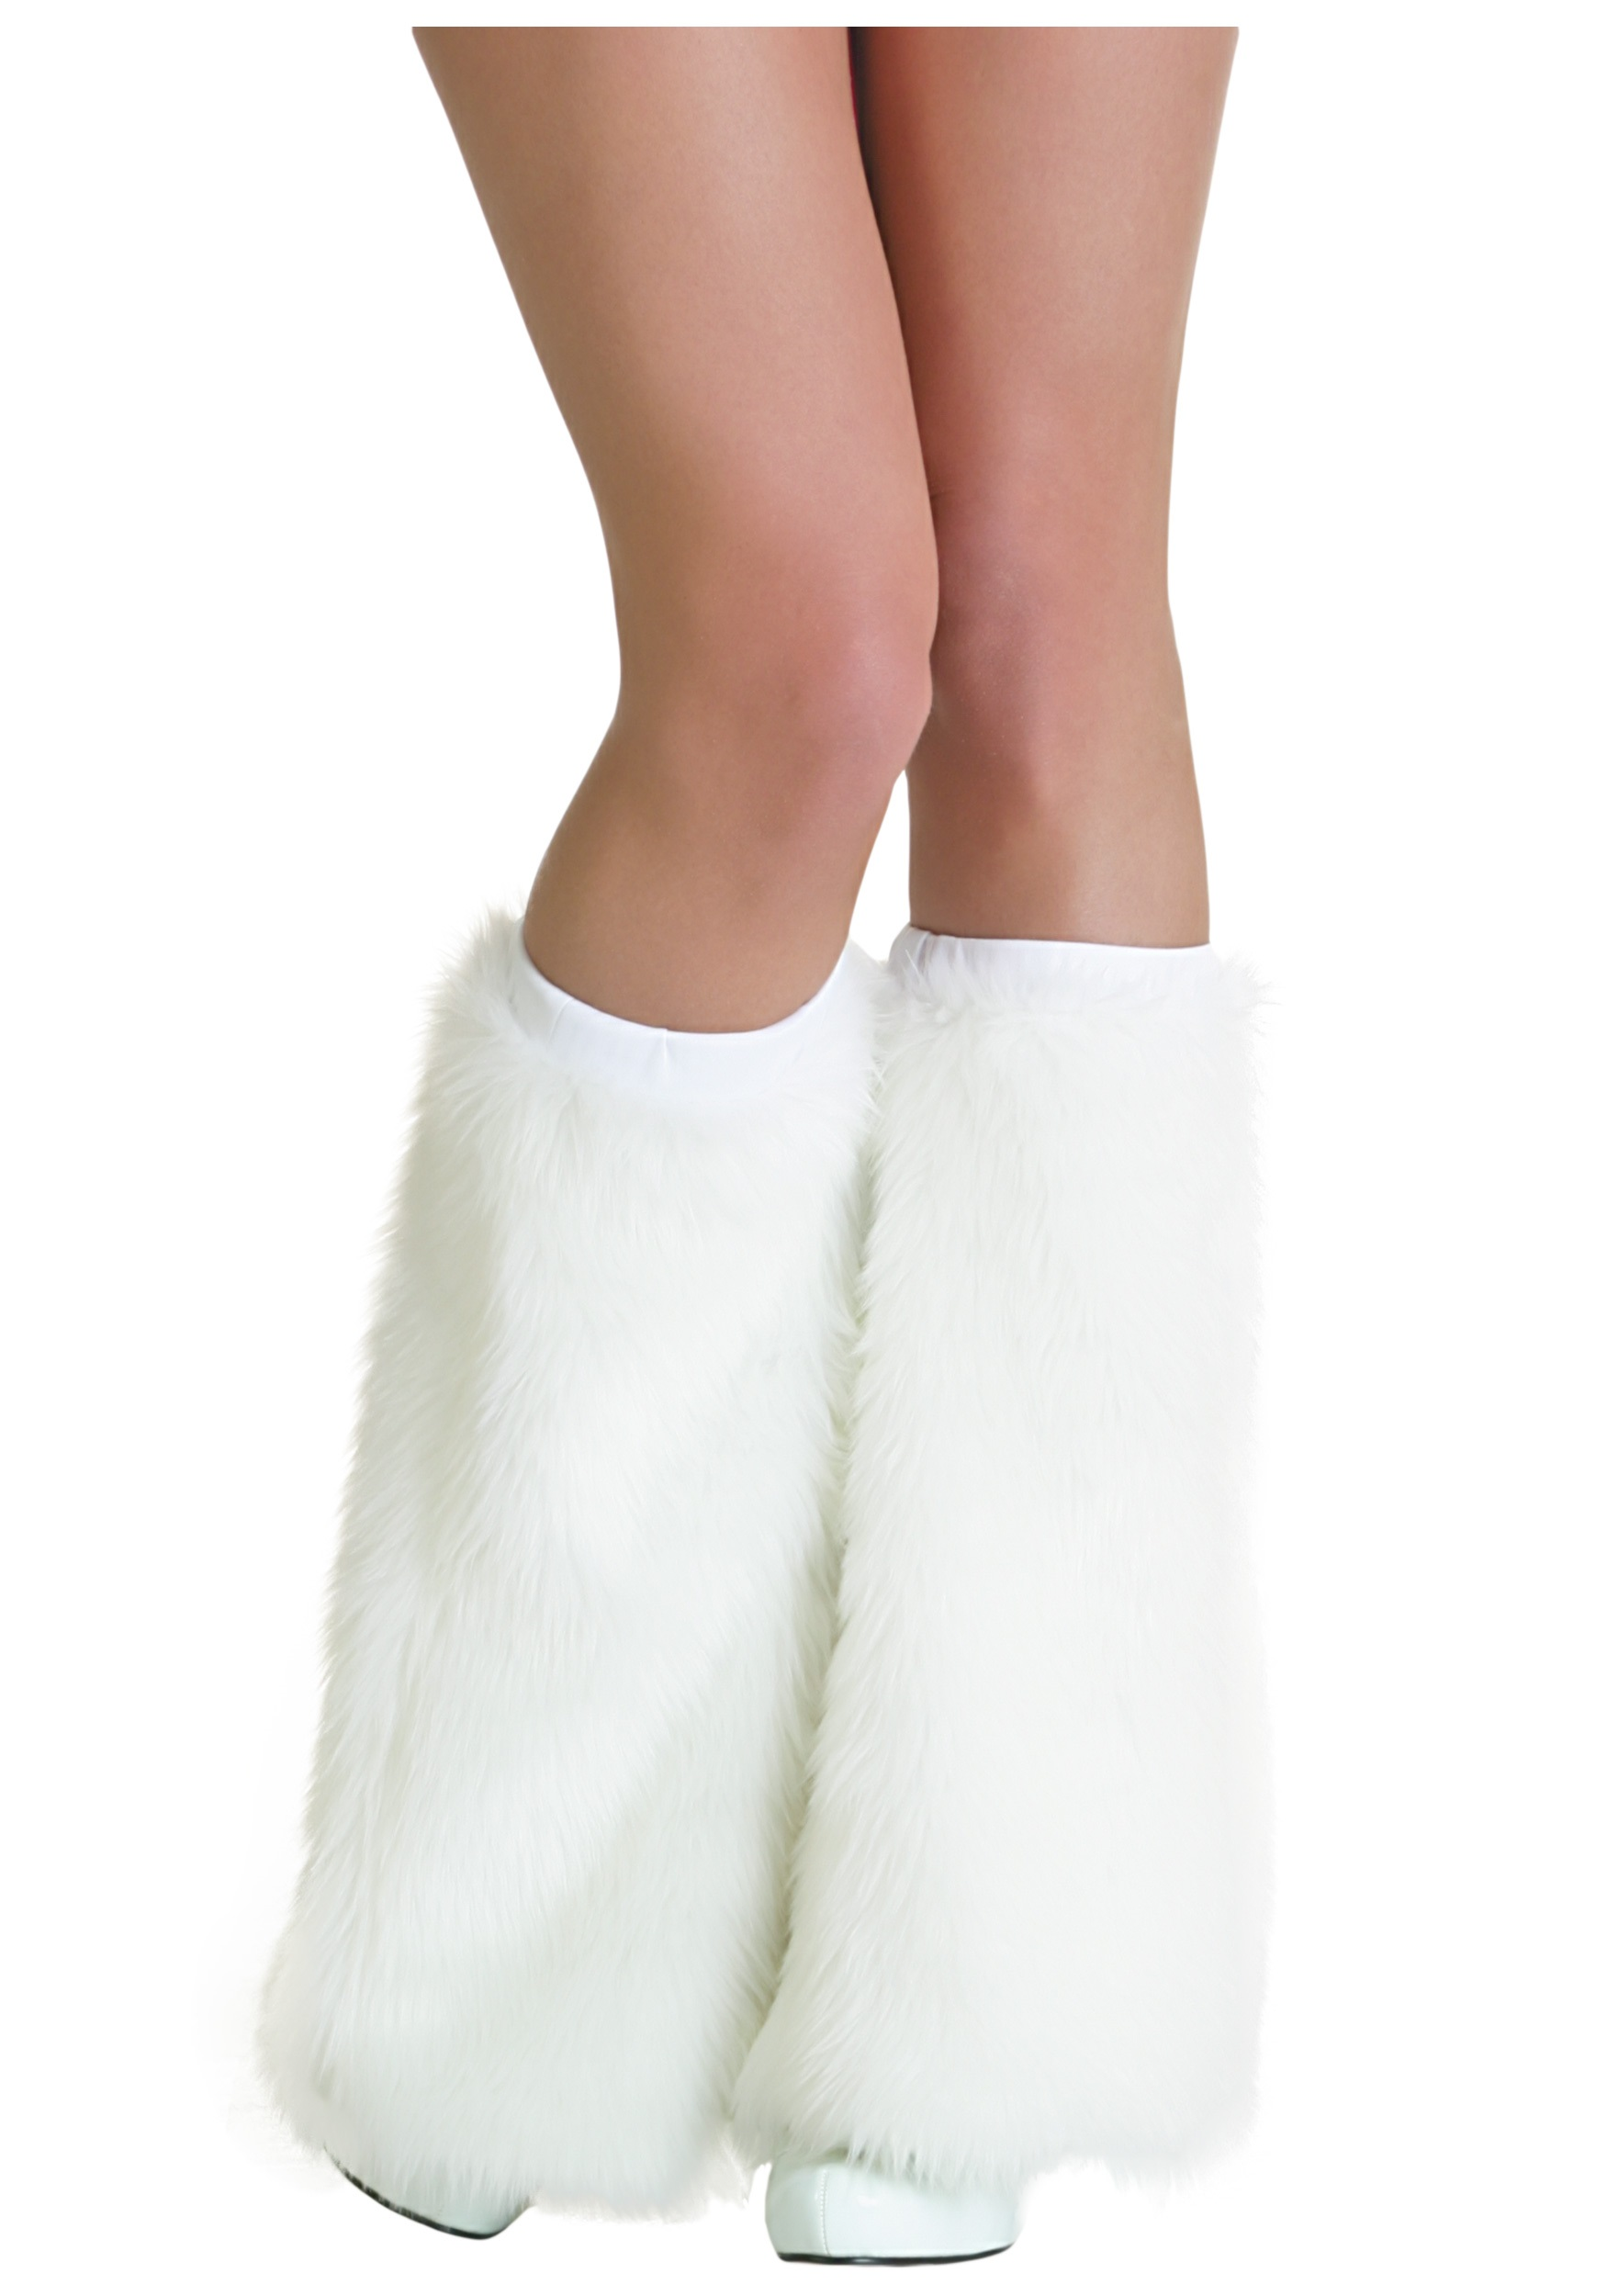 Fun Costumes Adult Black Furry Boot Covers